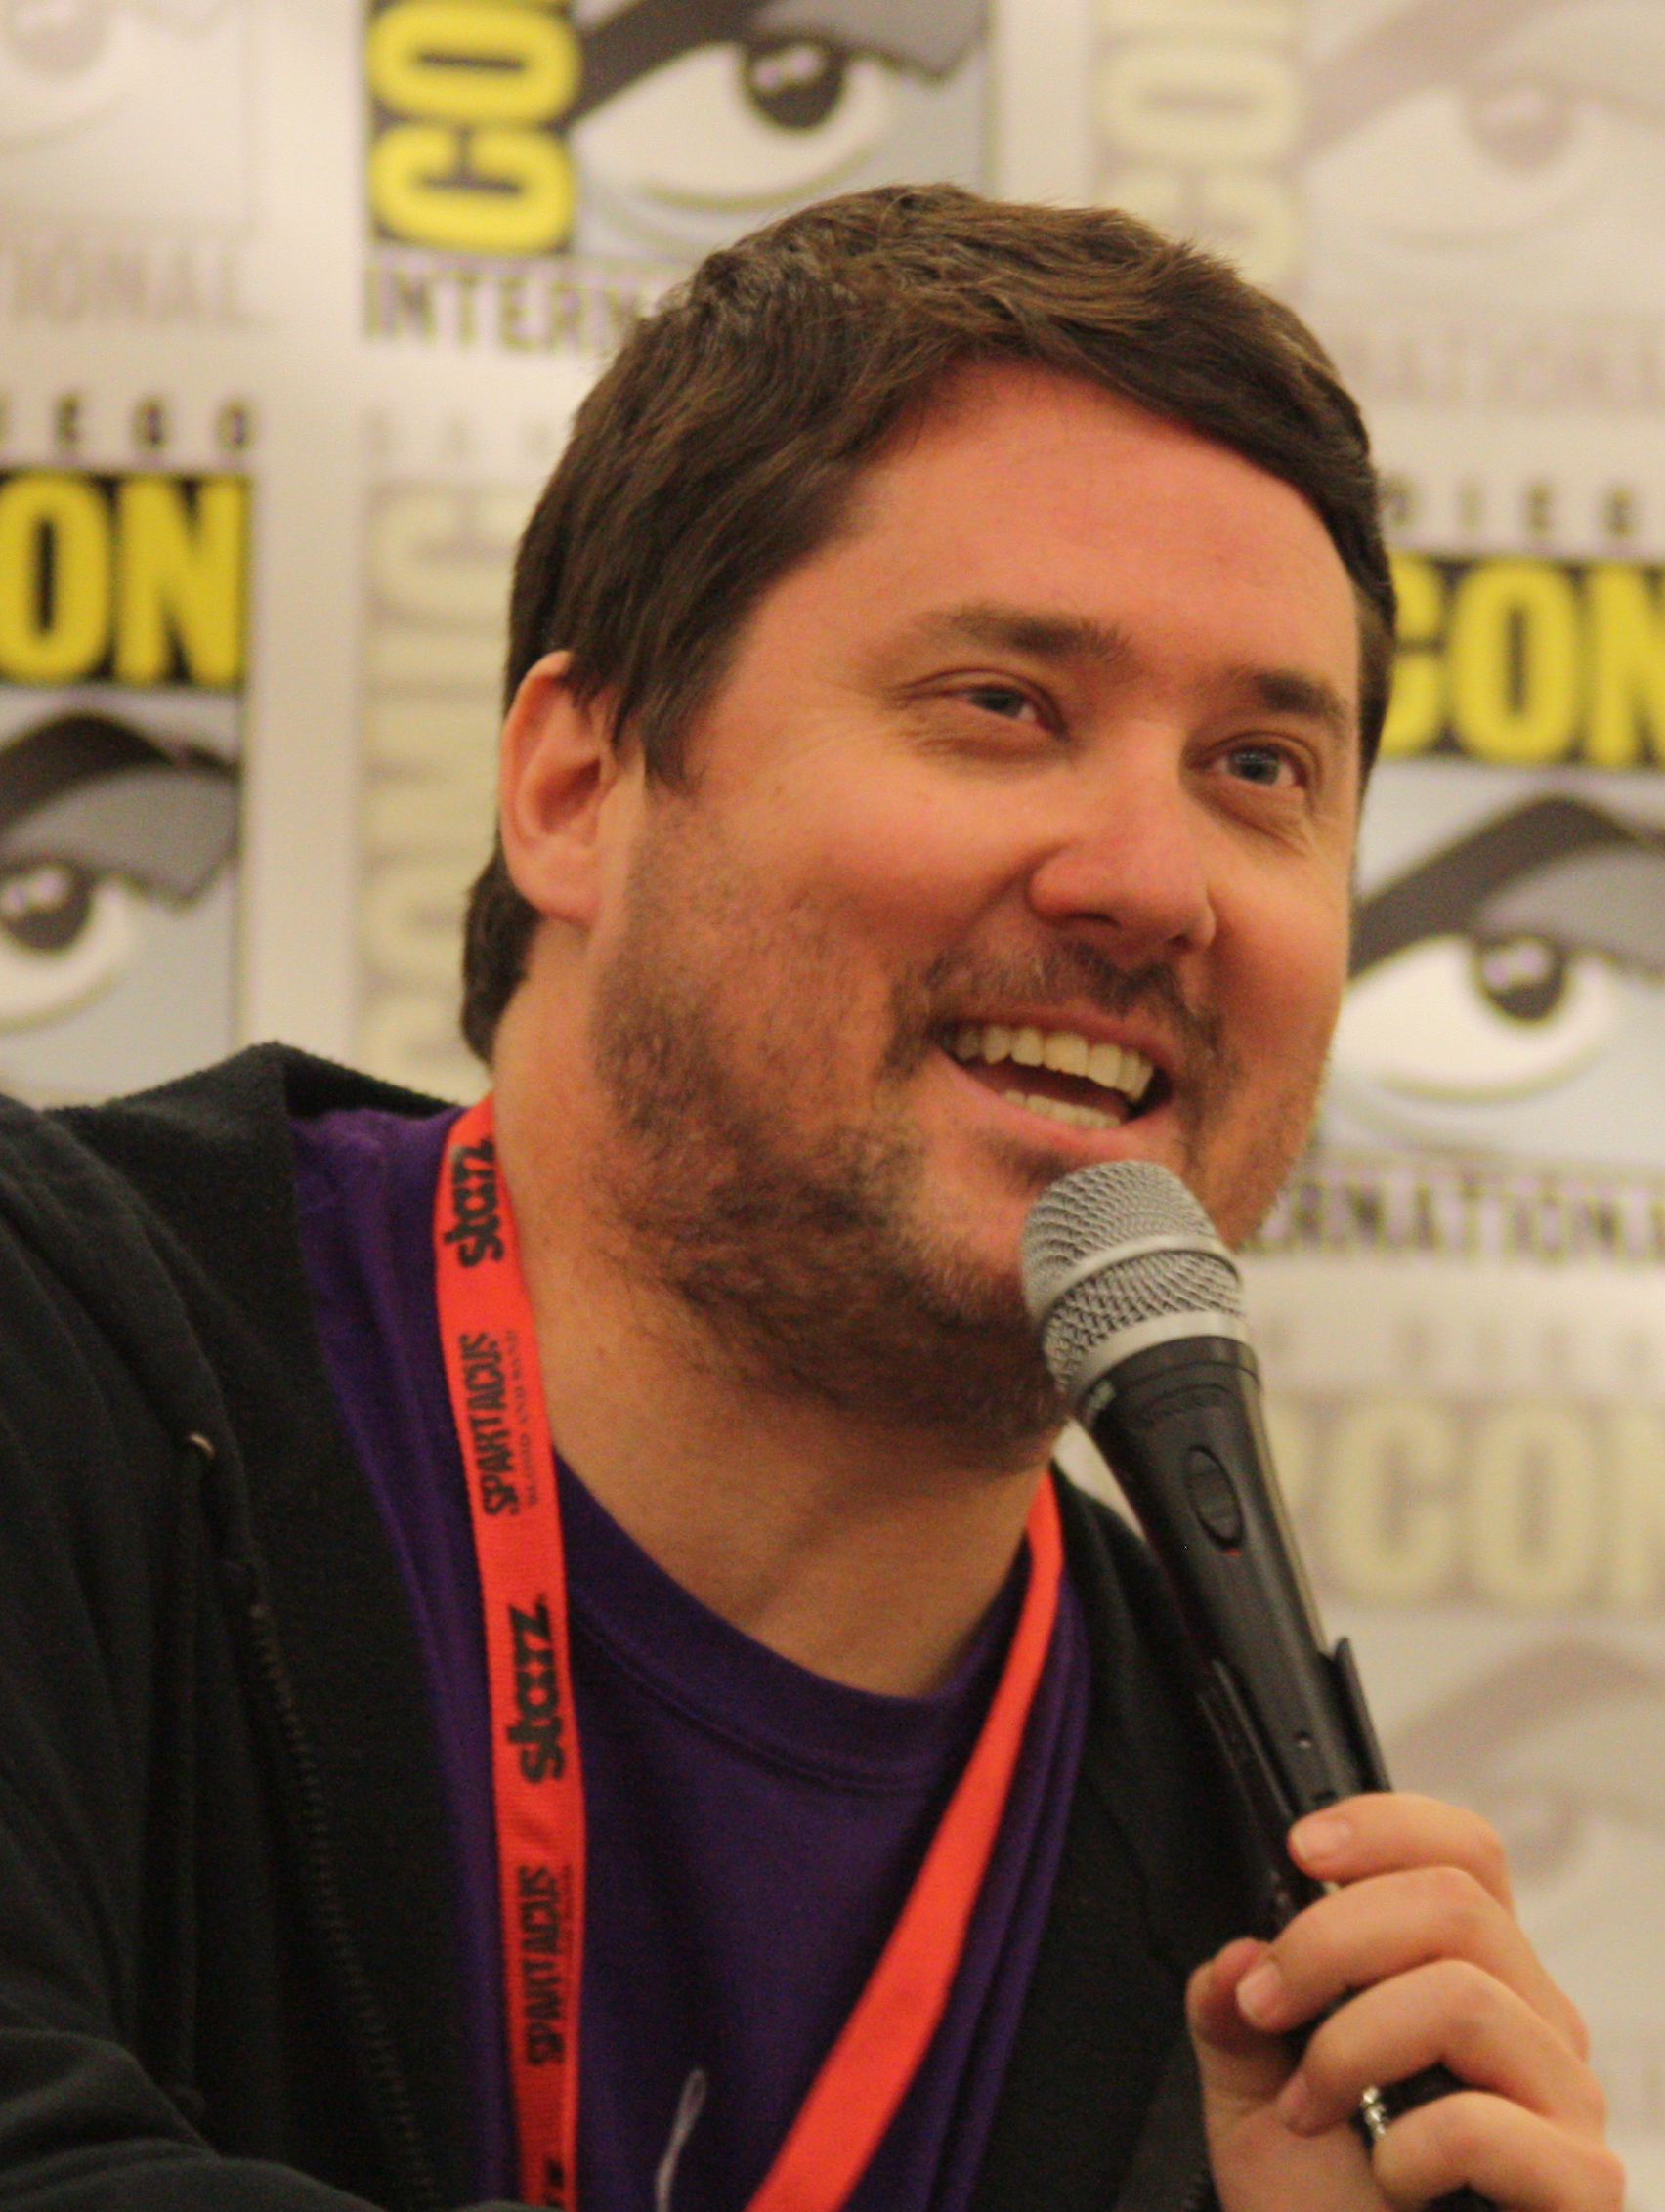 Doug Benson photo